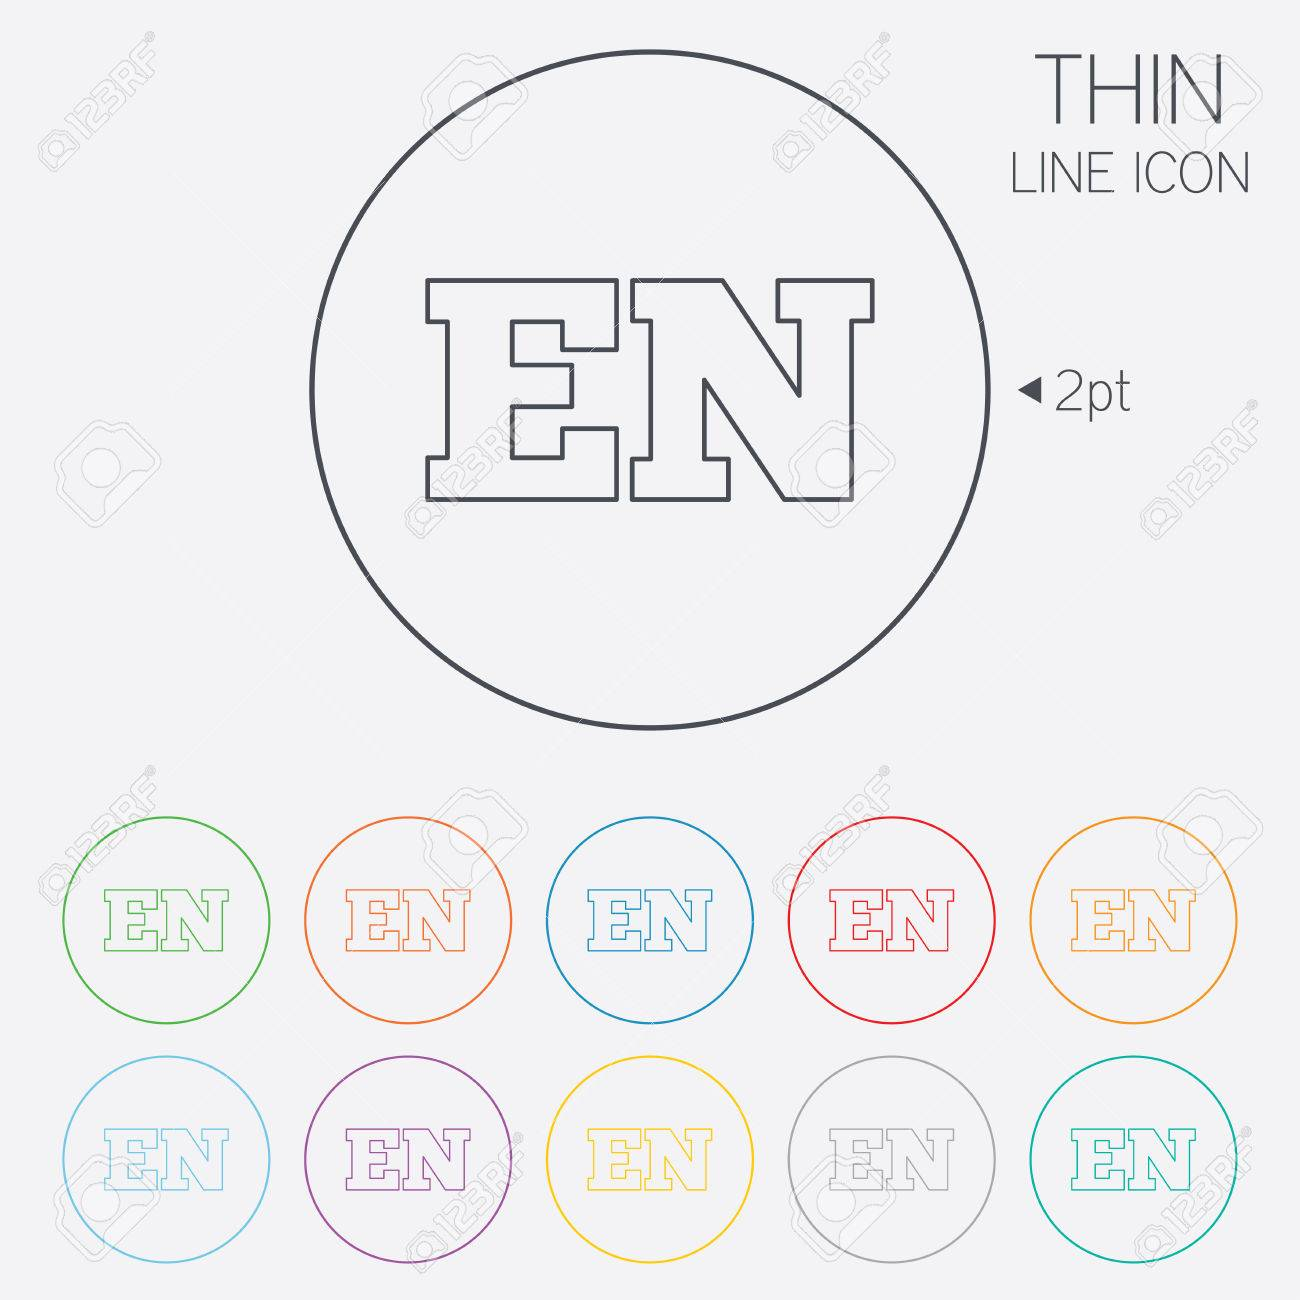 English language sign icon en translation symbol thin line english language sign icon en translation symbol thin line circle web icons with outline ccuart Gallery